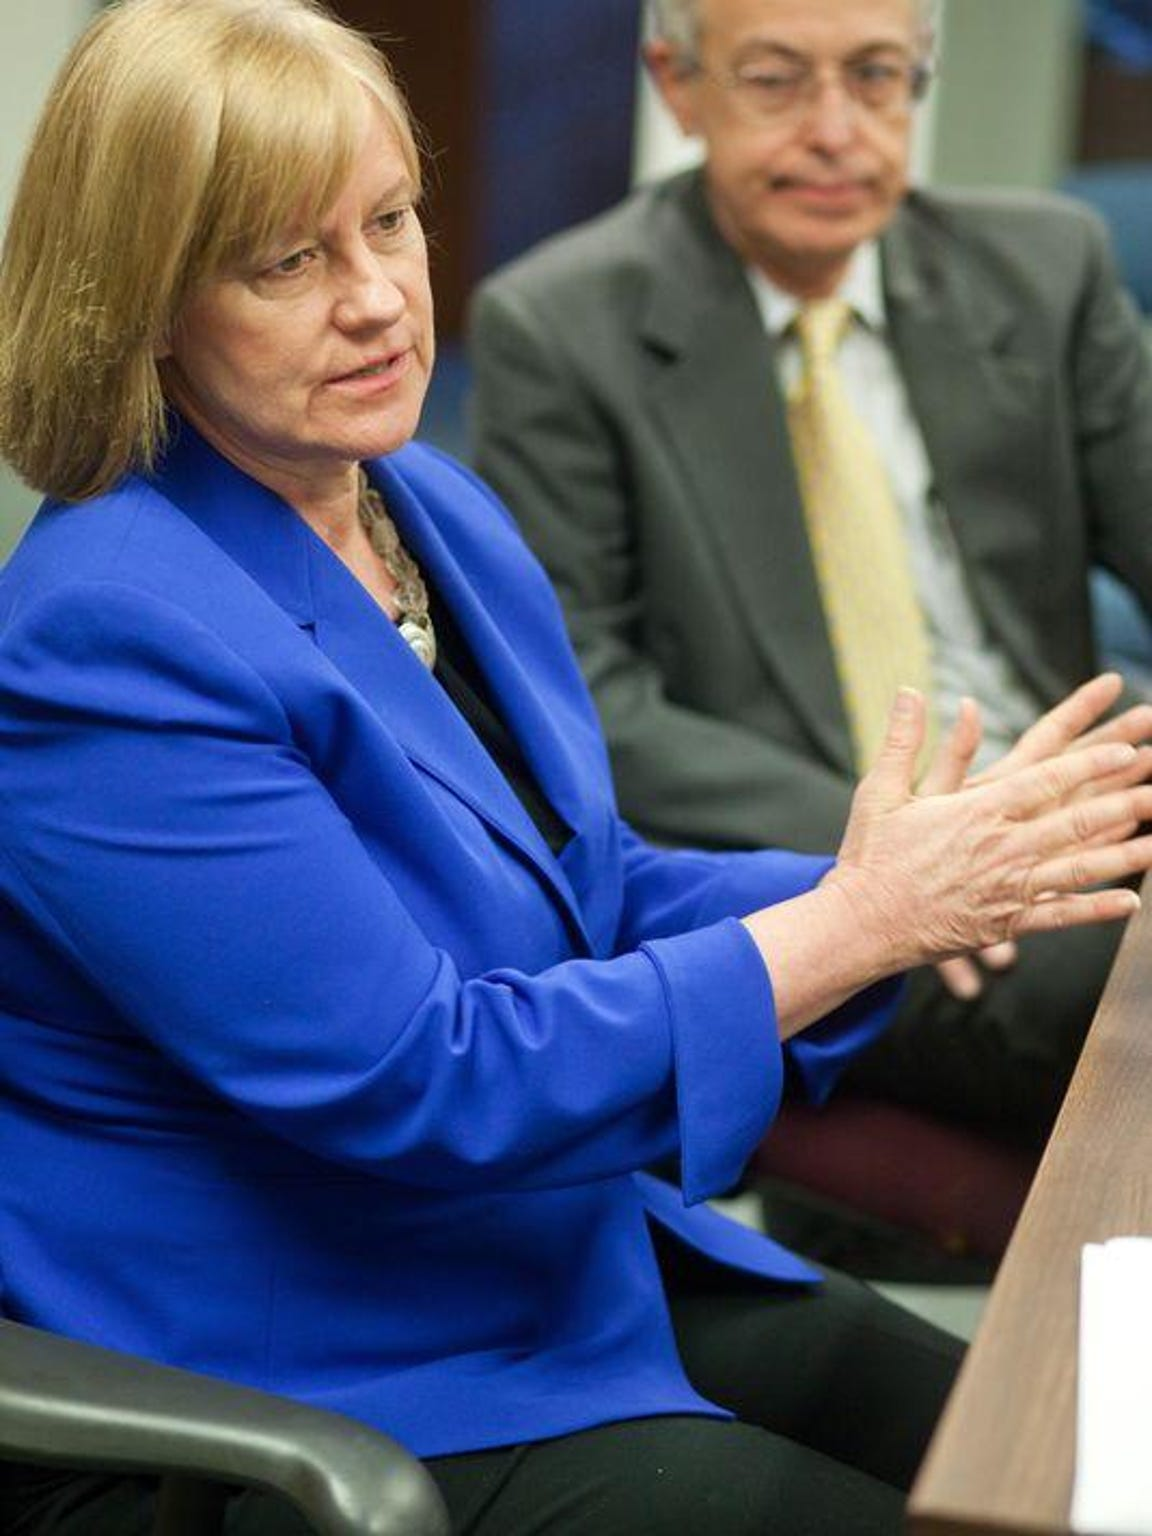 Kathleen MacRae, executive director of the American Civil Liberties Union in Delaware, speaks in a file photo. The ACLU and Community Legal Aid Society, Inc. announced today that it has filed a federal lawsuit against Delaware's prison system for holding at least 100 inmates with mental illnesses in solitary confinement.